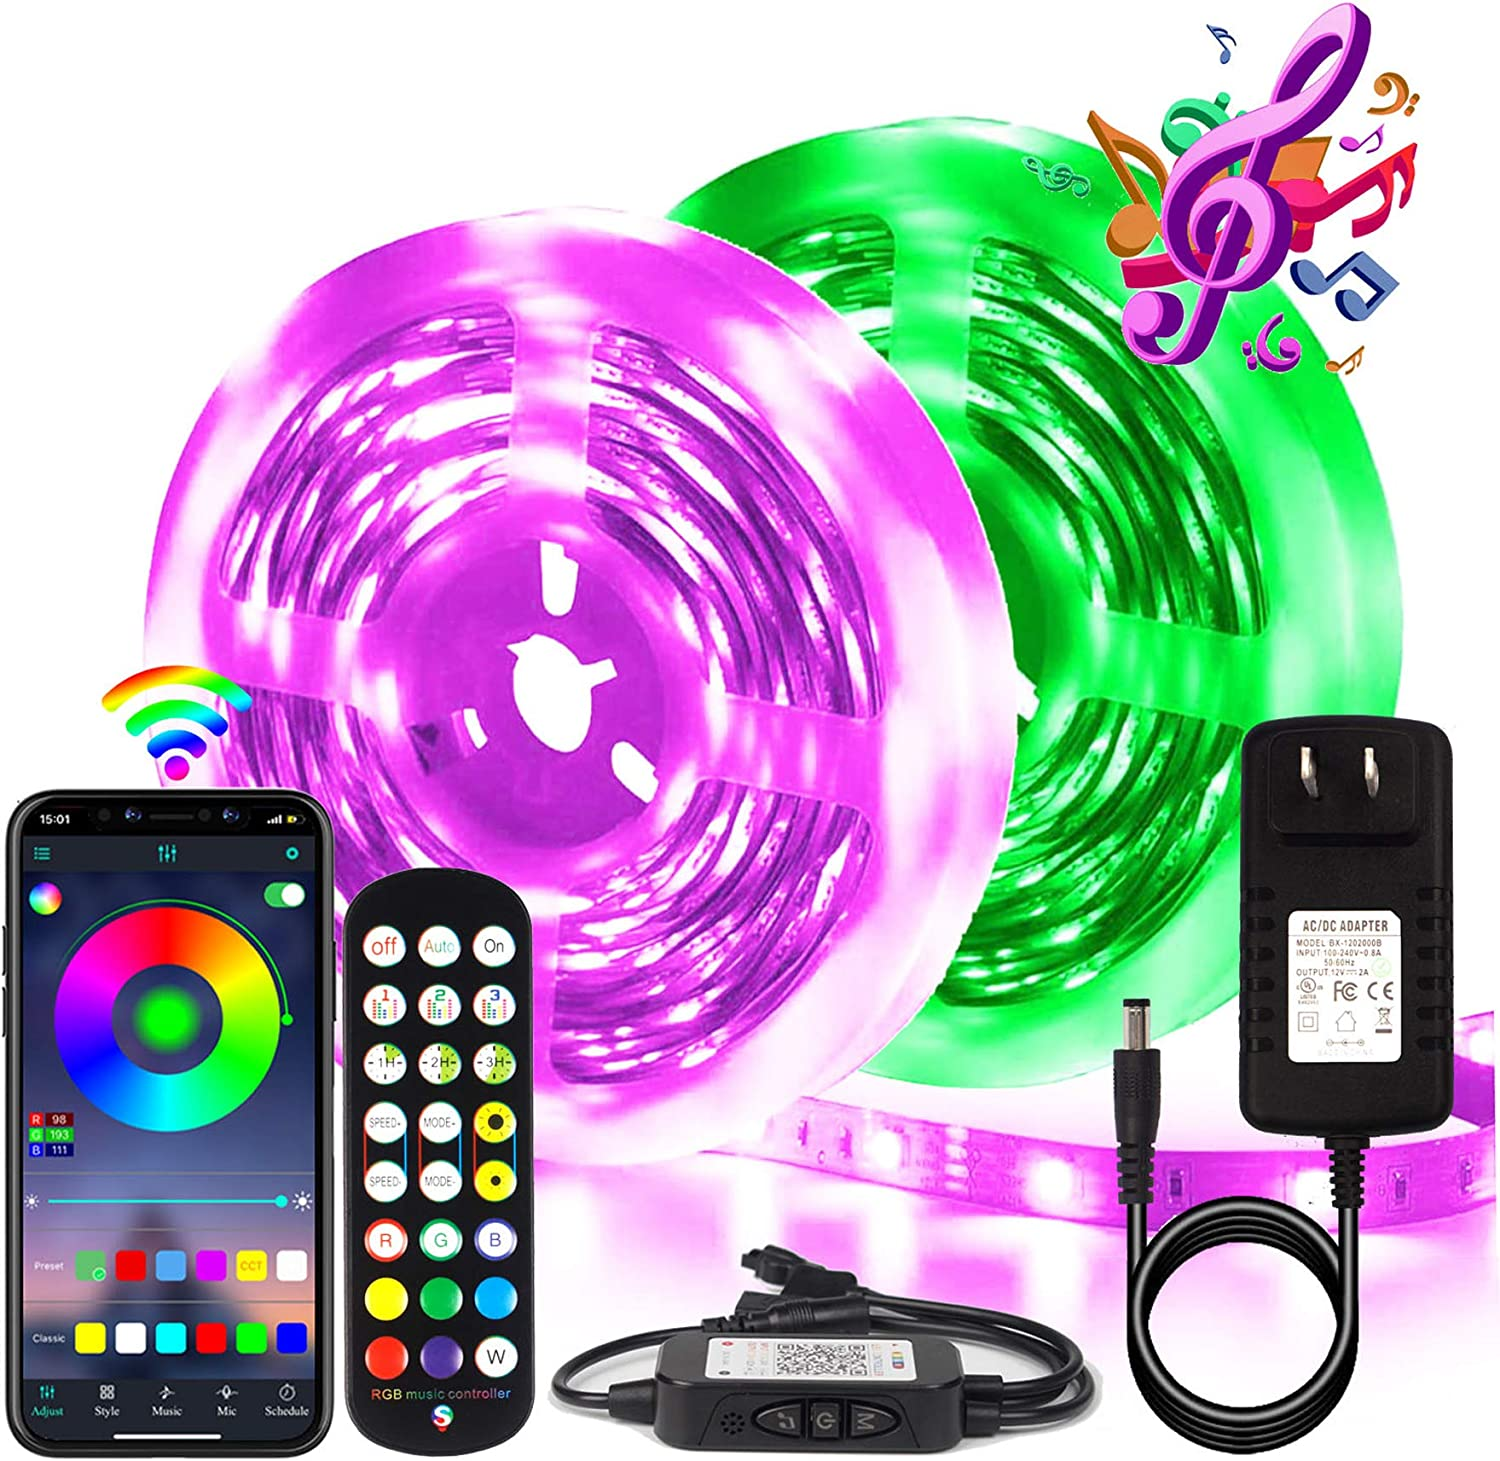 BIHRTC RGB Led Strip Lights 50ft Led Music Sync Color Changing Lights with Music Remote Controller and Power Supply 5050 15m Led Lights for Room Bedroom Party